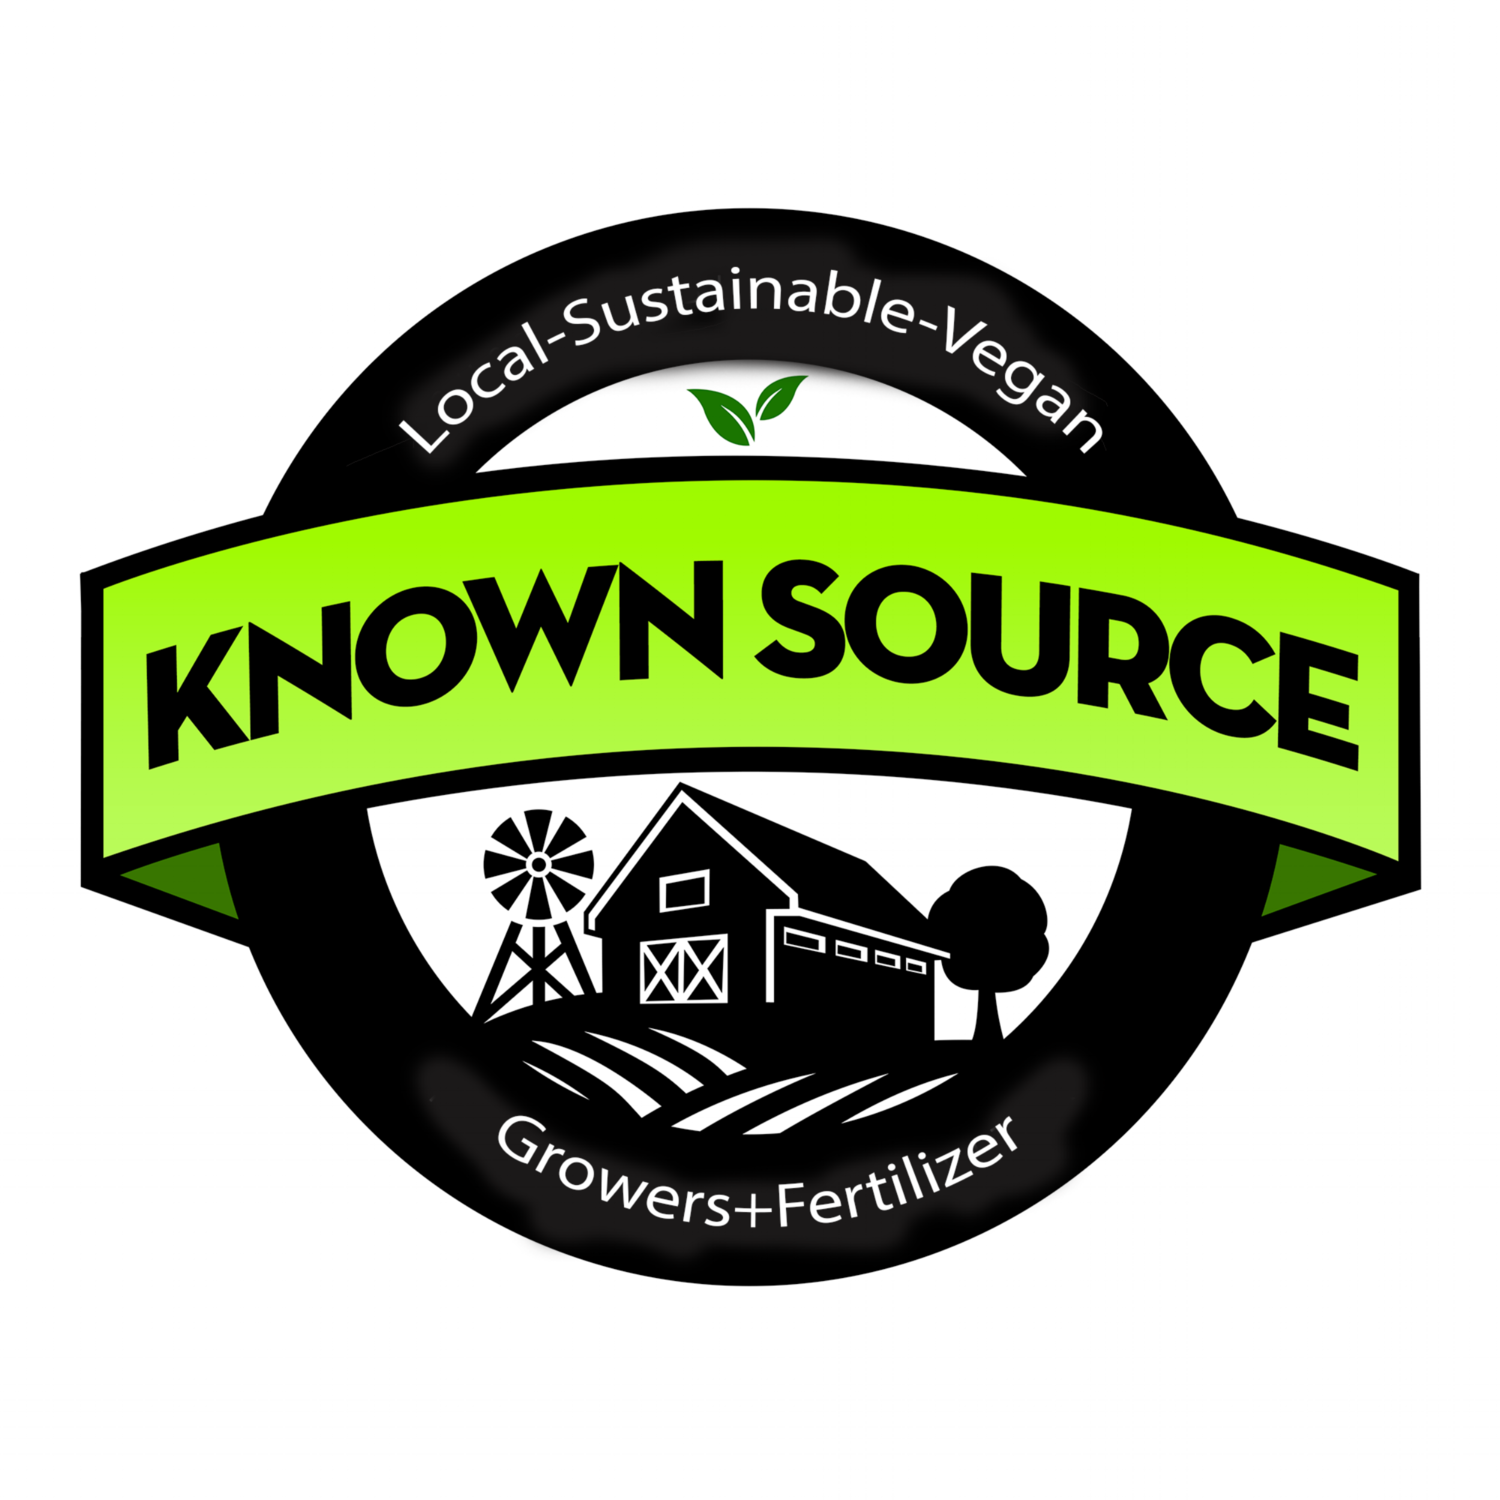 Known Source Farms